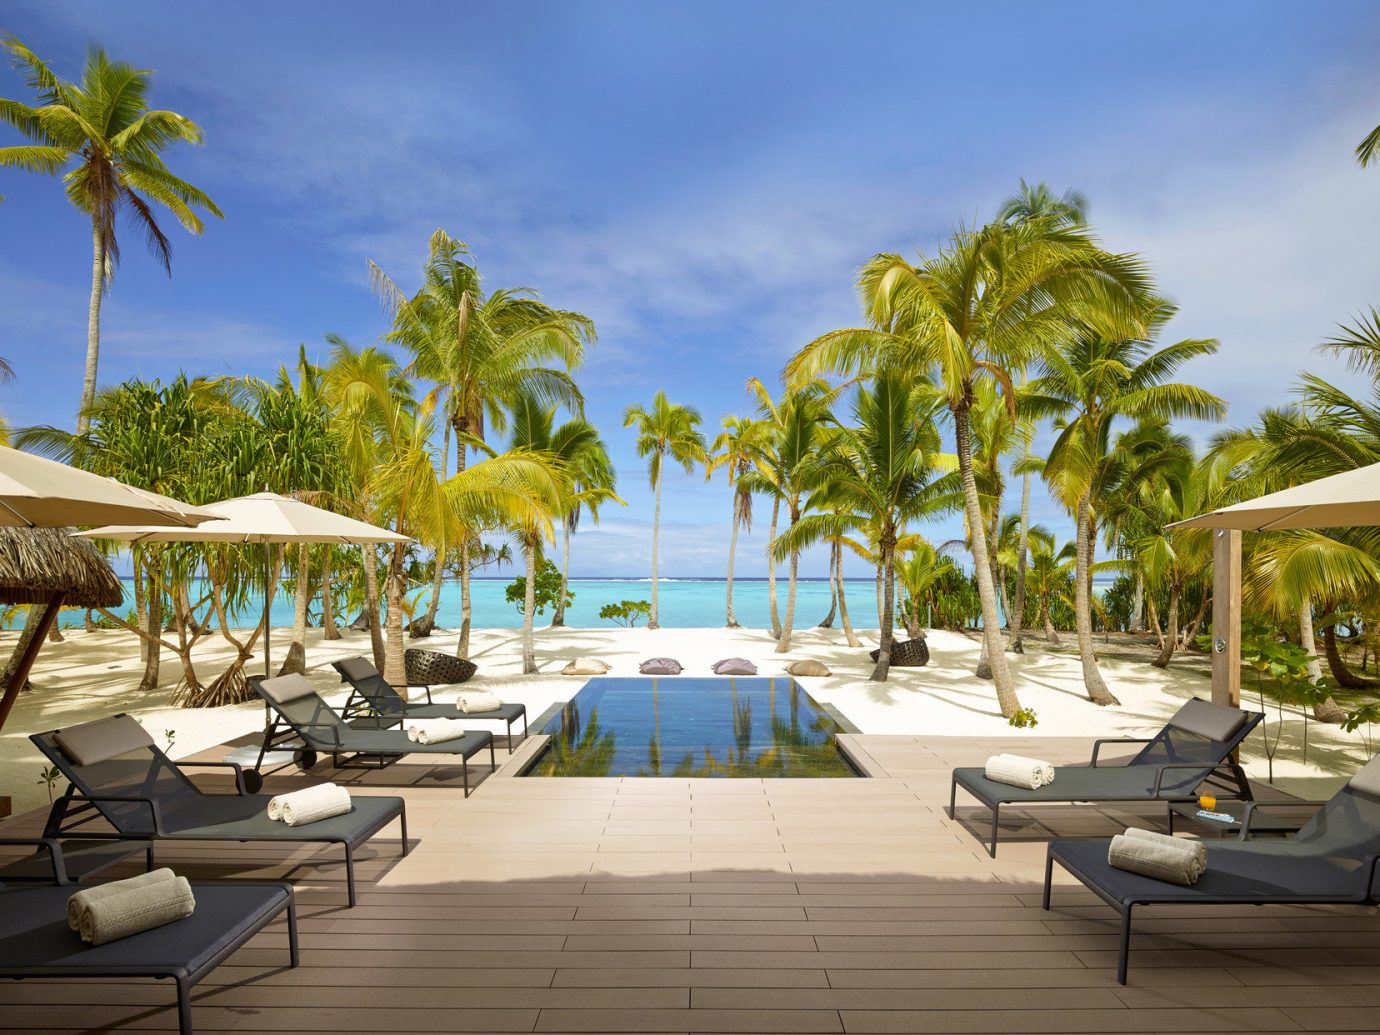 All-Inclusive Resorts Beach Boutique Hotels calm canopy Family Travel Hotels lounge chairs Luxury Luxury Travel Ocean outdoor pool palm trees Pool reflection remote Romance Romantic Hotels serene Tropical turquoise tree outdoor umbrella palm leisure Resort property vacation estate swimming pool caribbean arecales Villa walkway lined Deck furniture shade several day sandy